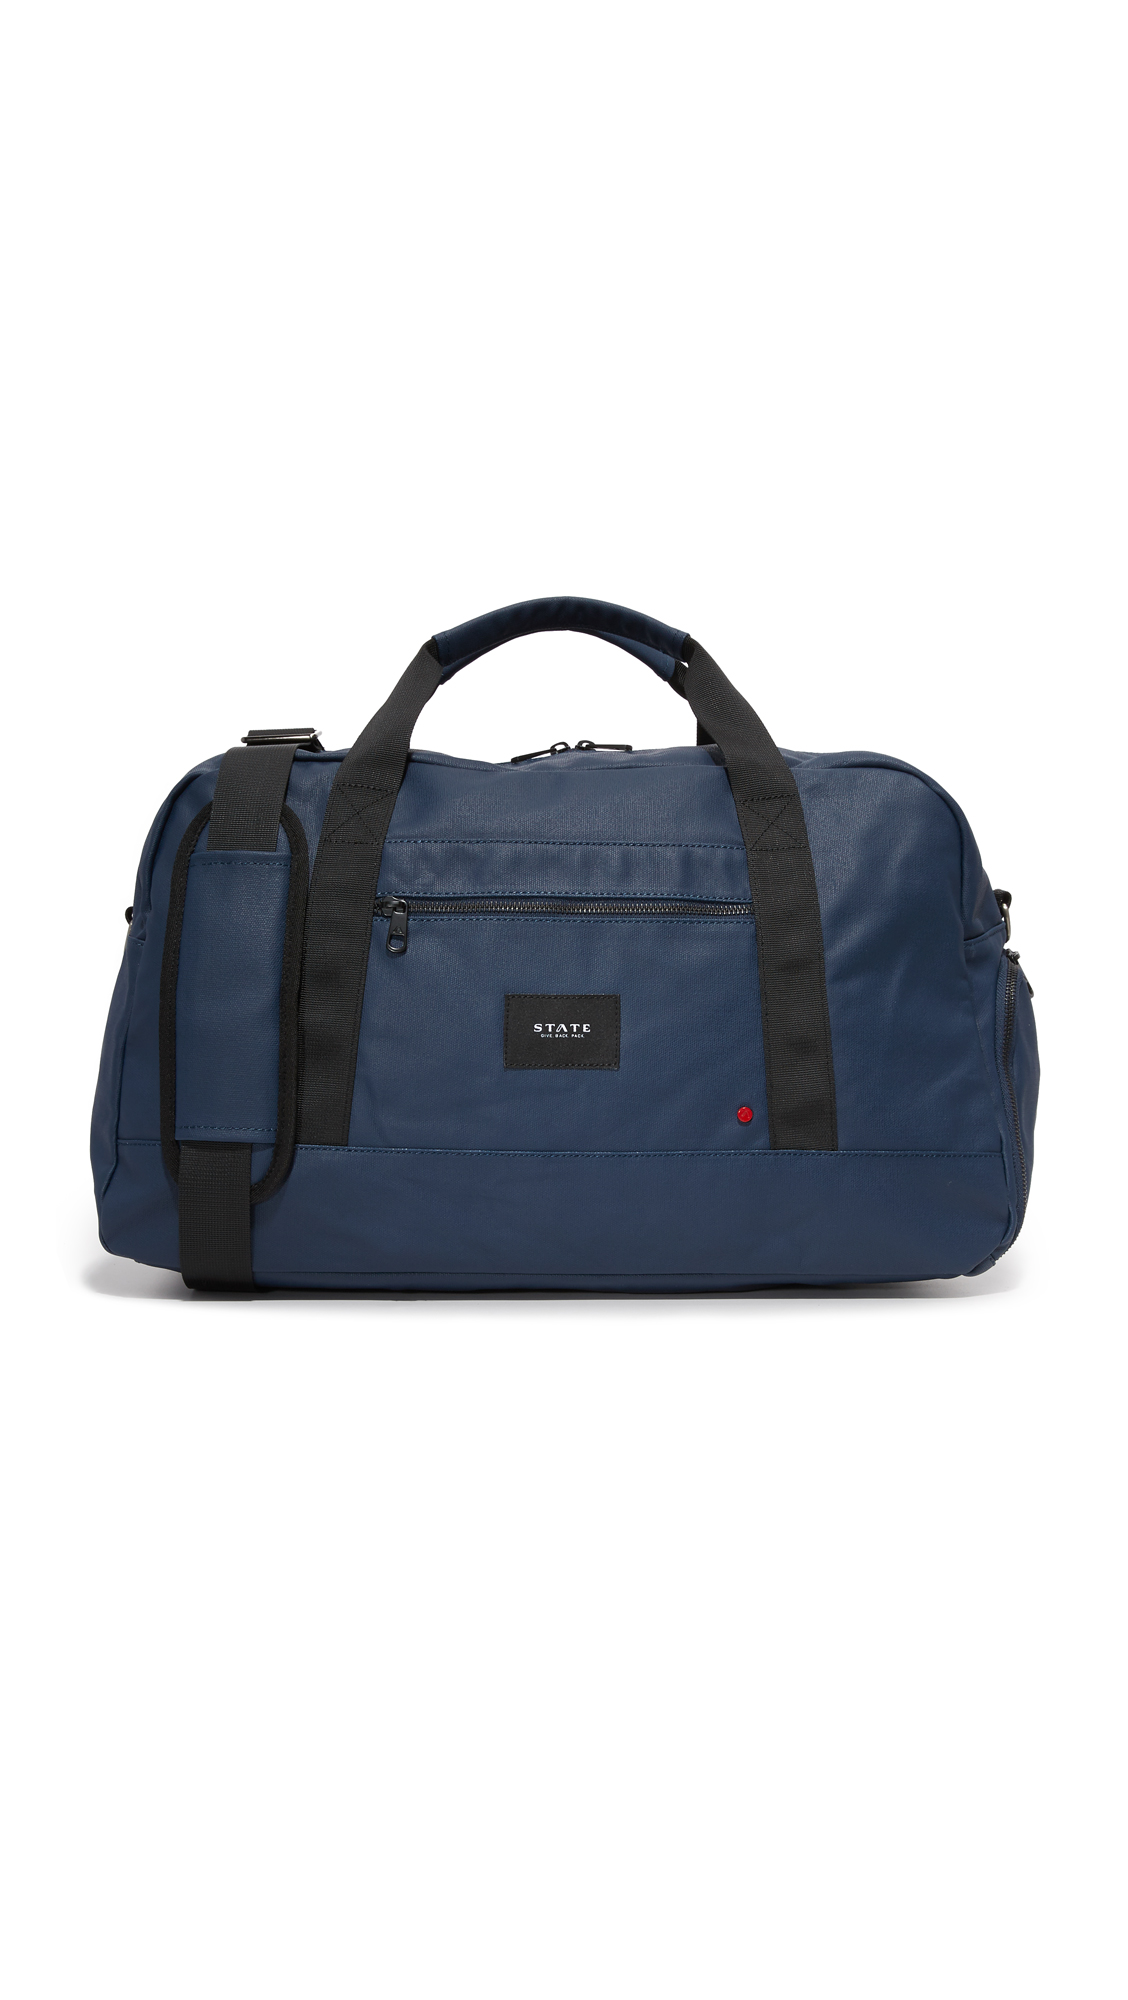 state female state franklin duffel bag navy